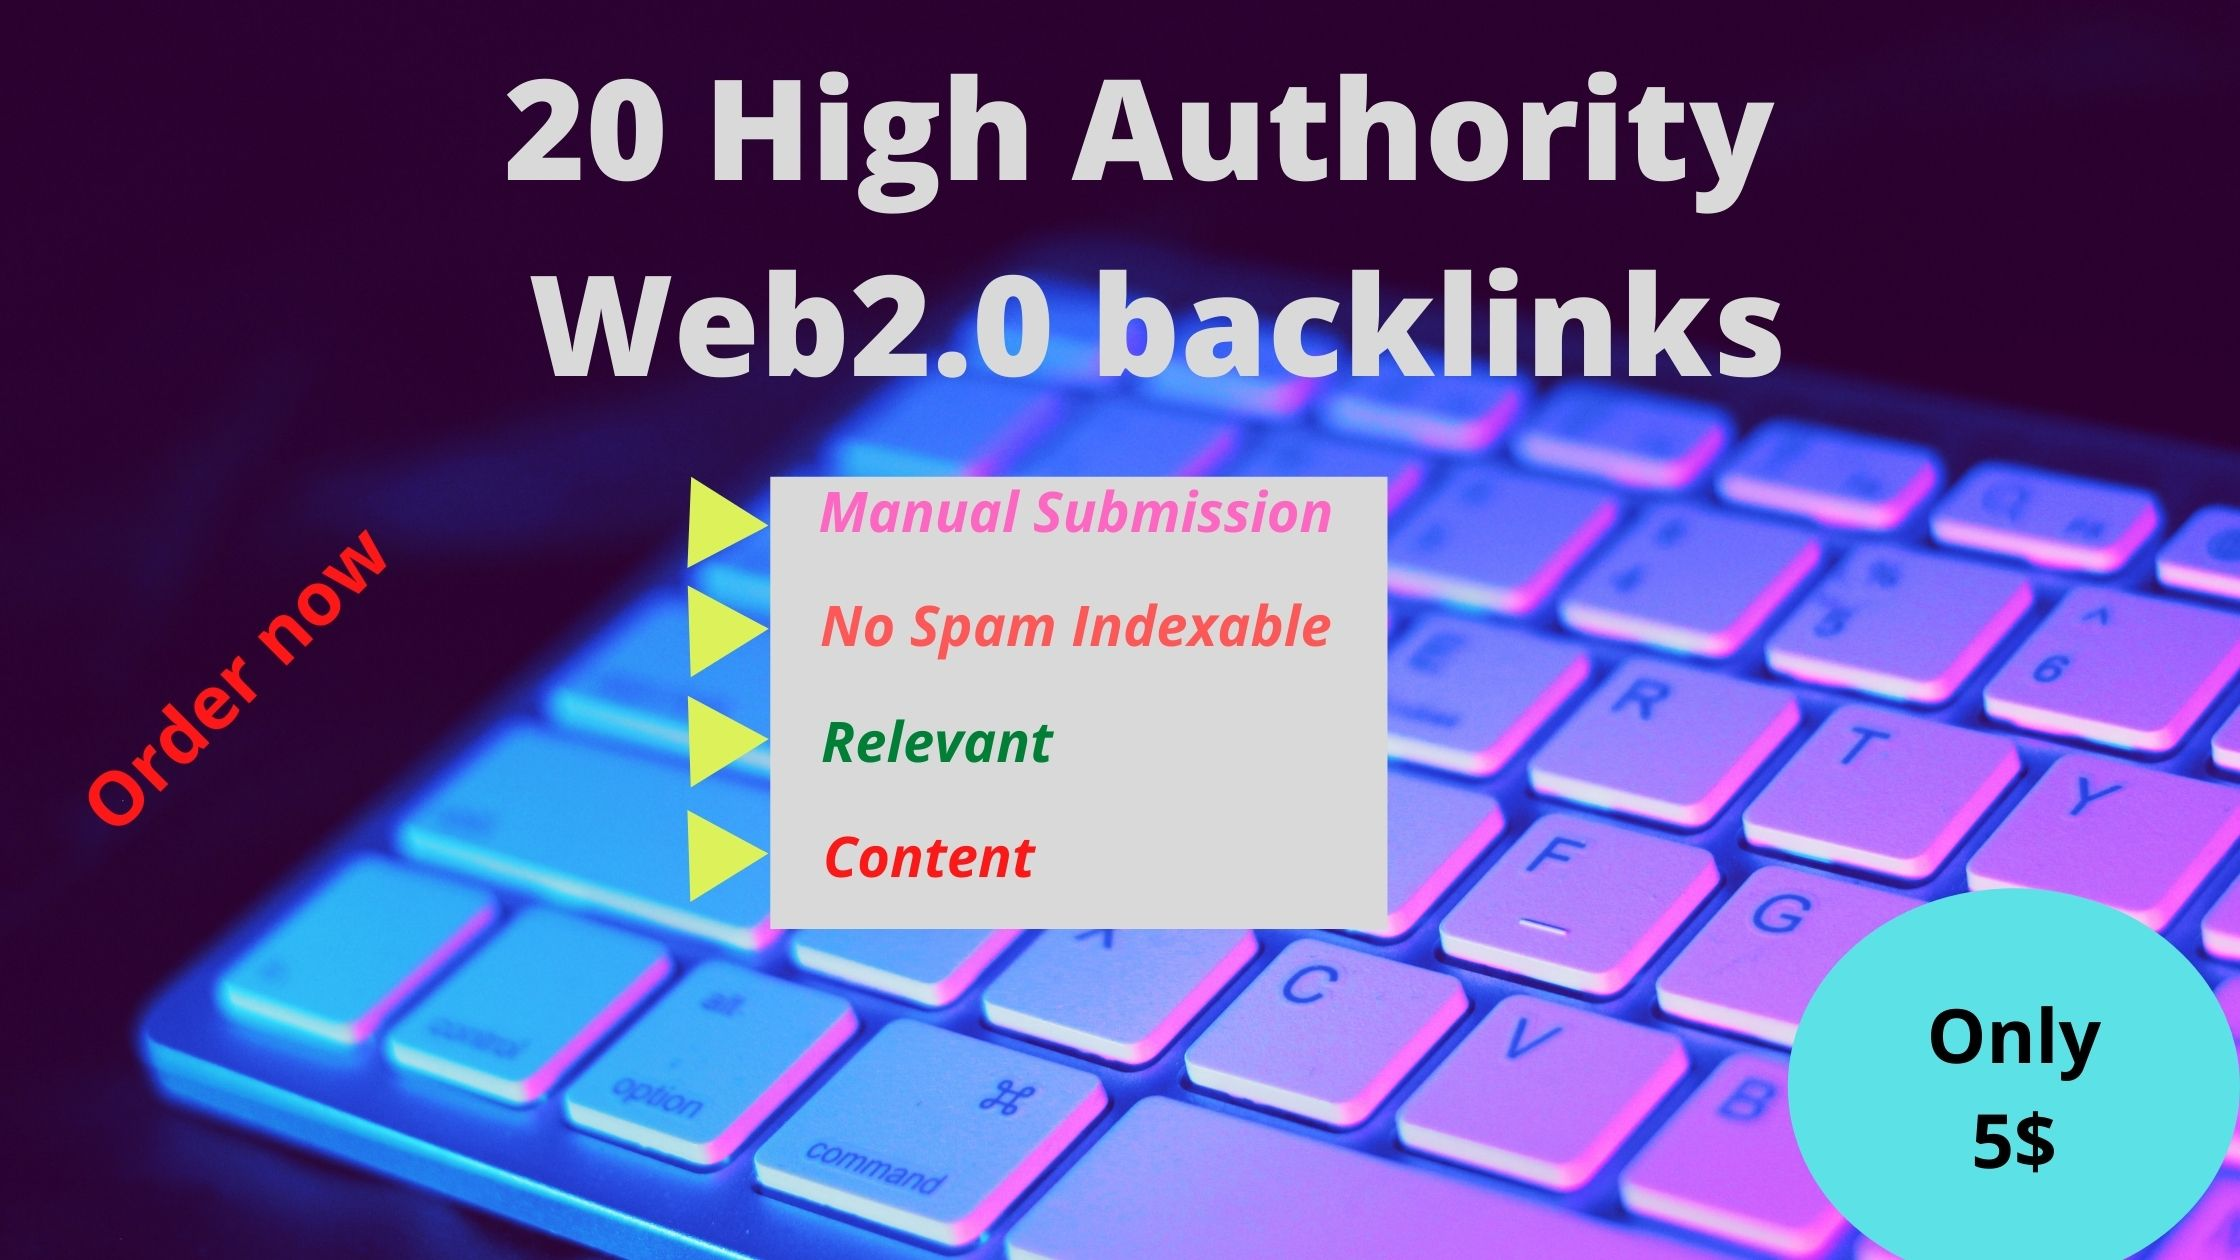 I will provide 20 High Authority Web2.0 Backlinks